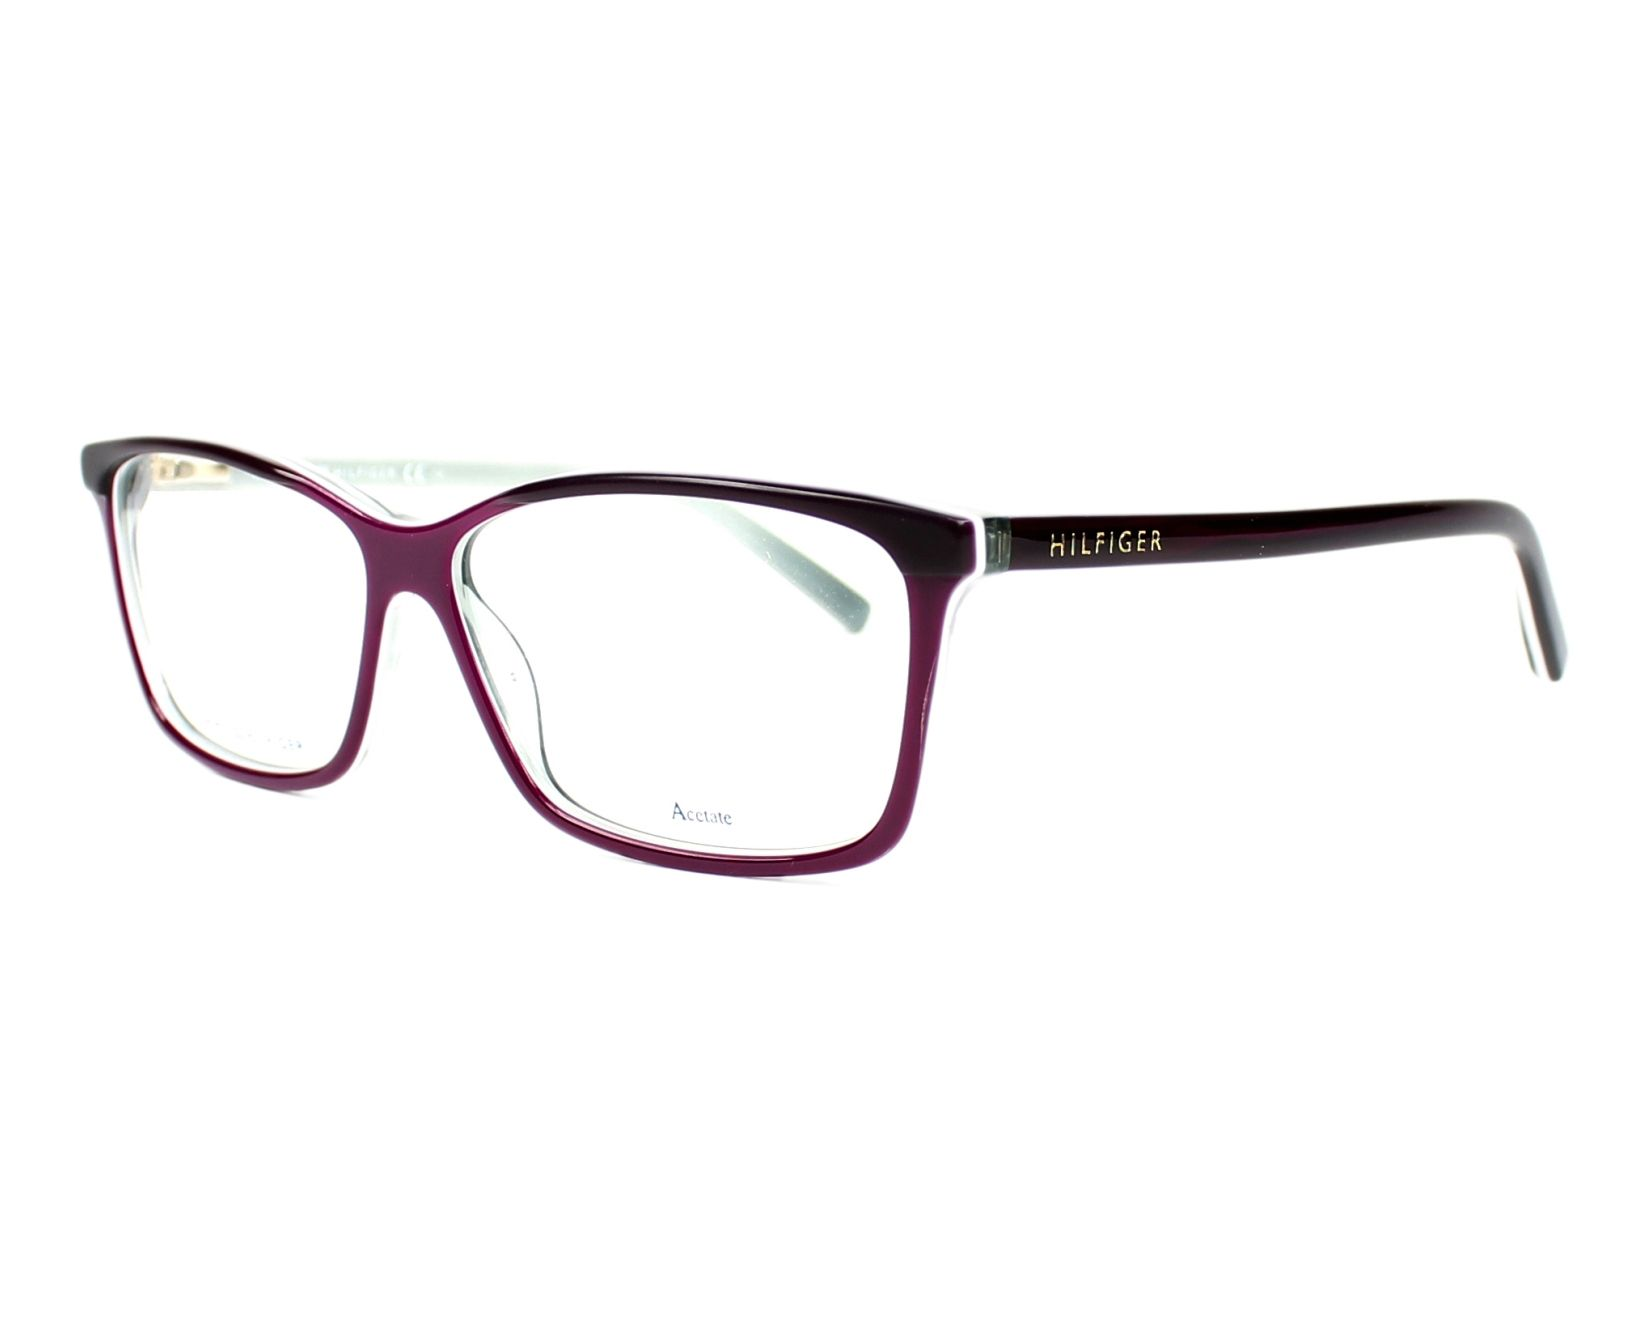 Buy Tommy Hilfiger Eyeglasses TH-1123 4T3 Online